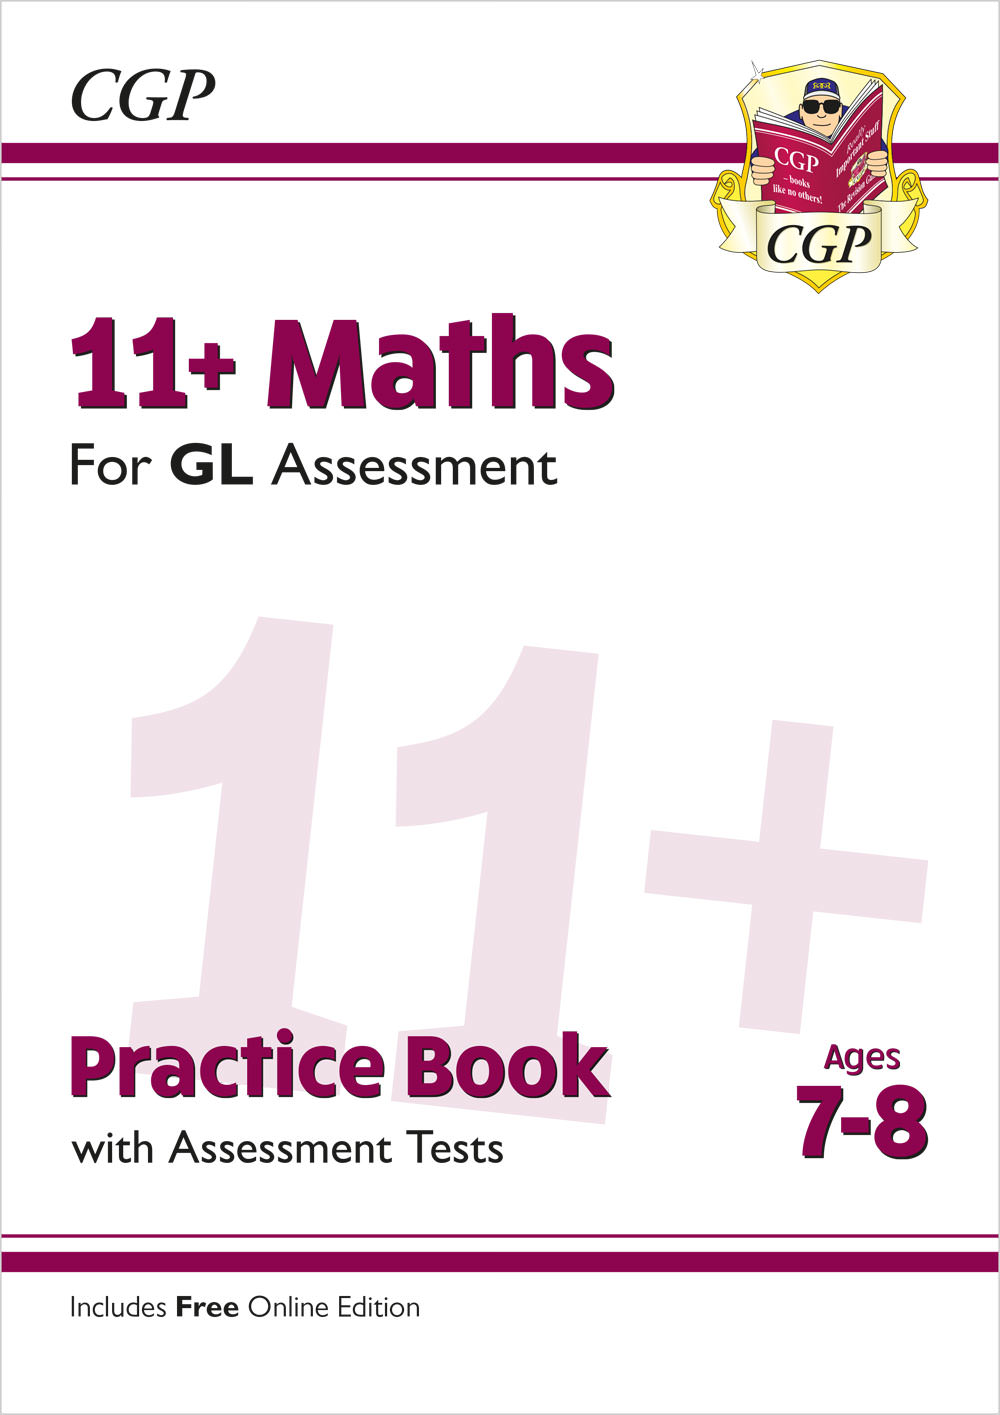 M3QE2 - New 11+ GL Maths Practice Book & Assessment Tests - Ages 7-8 (with Online Edition)